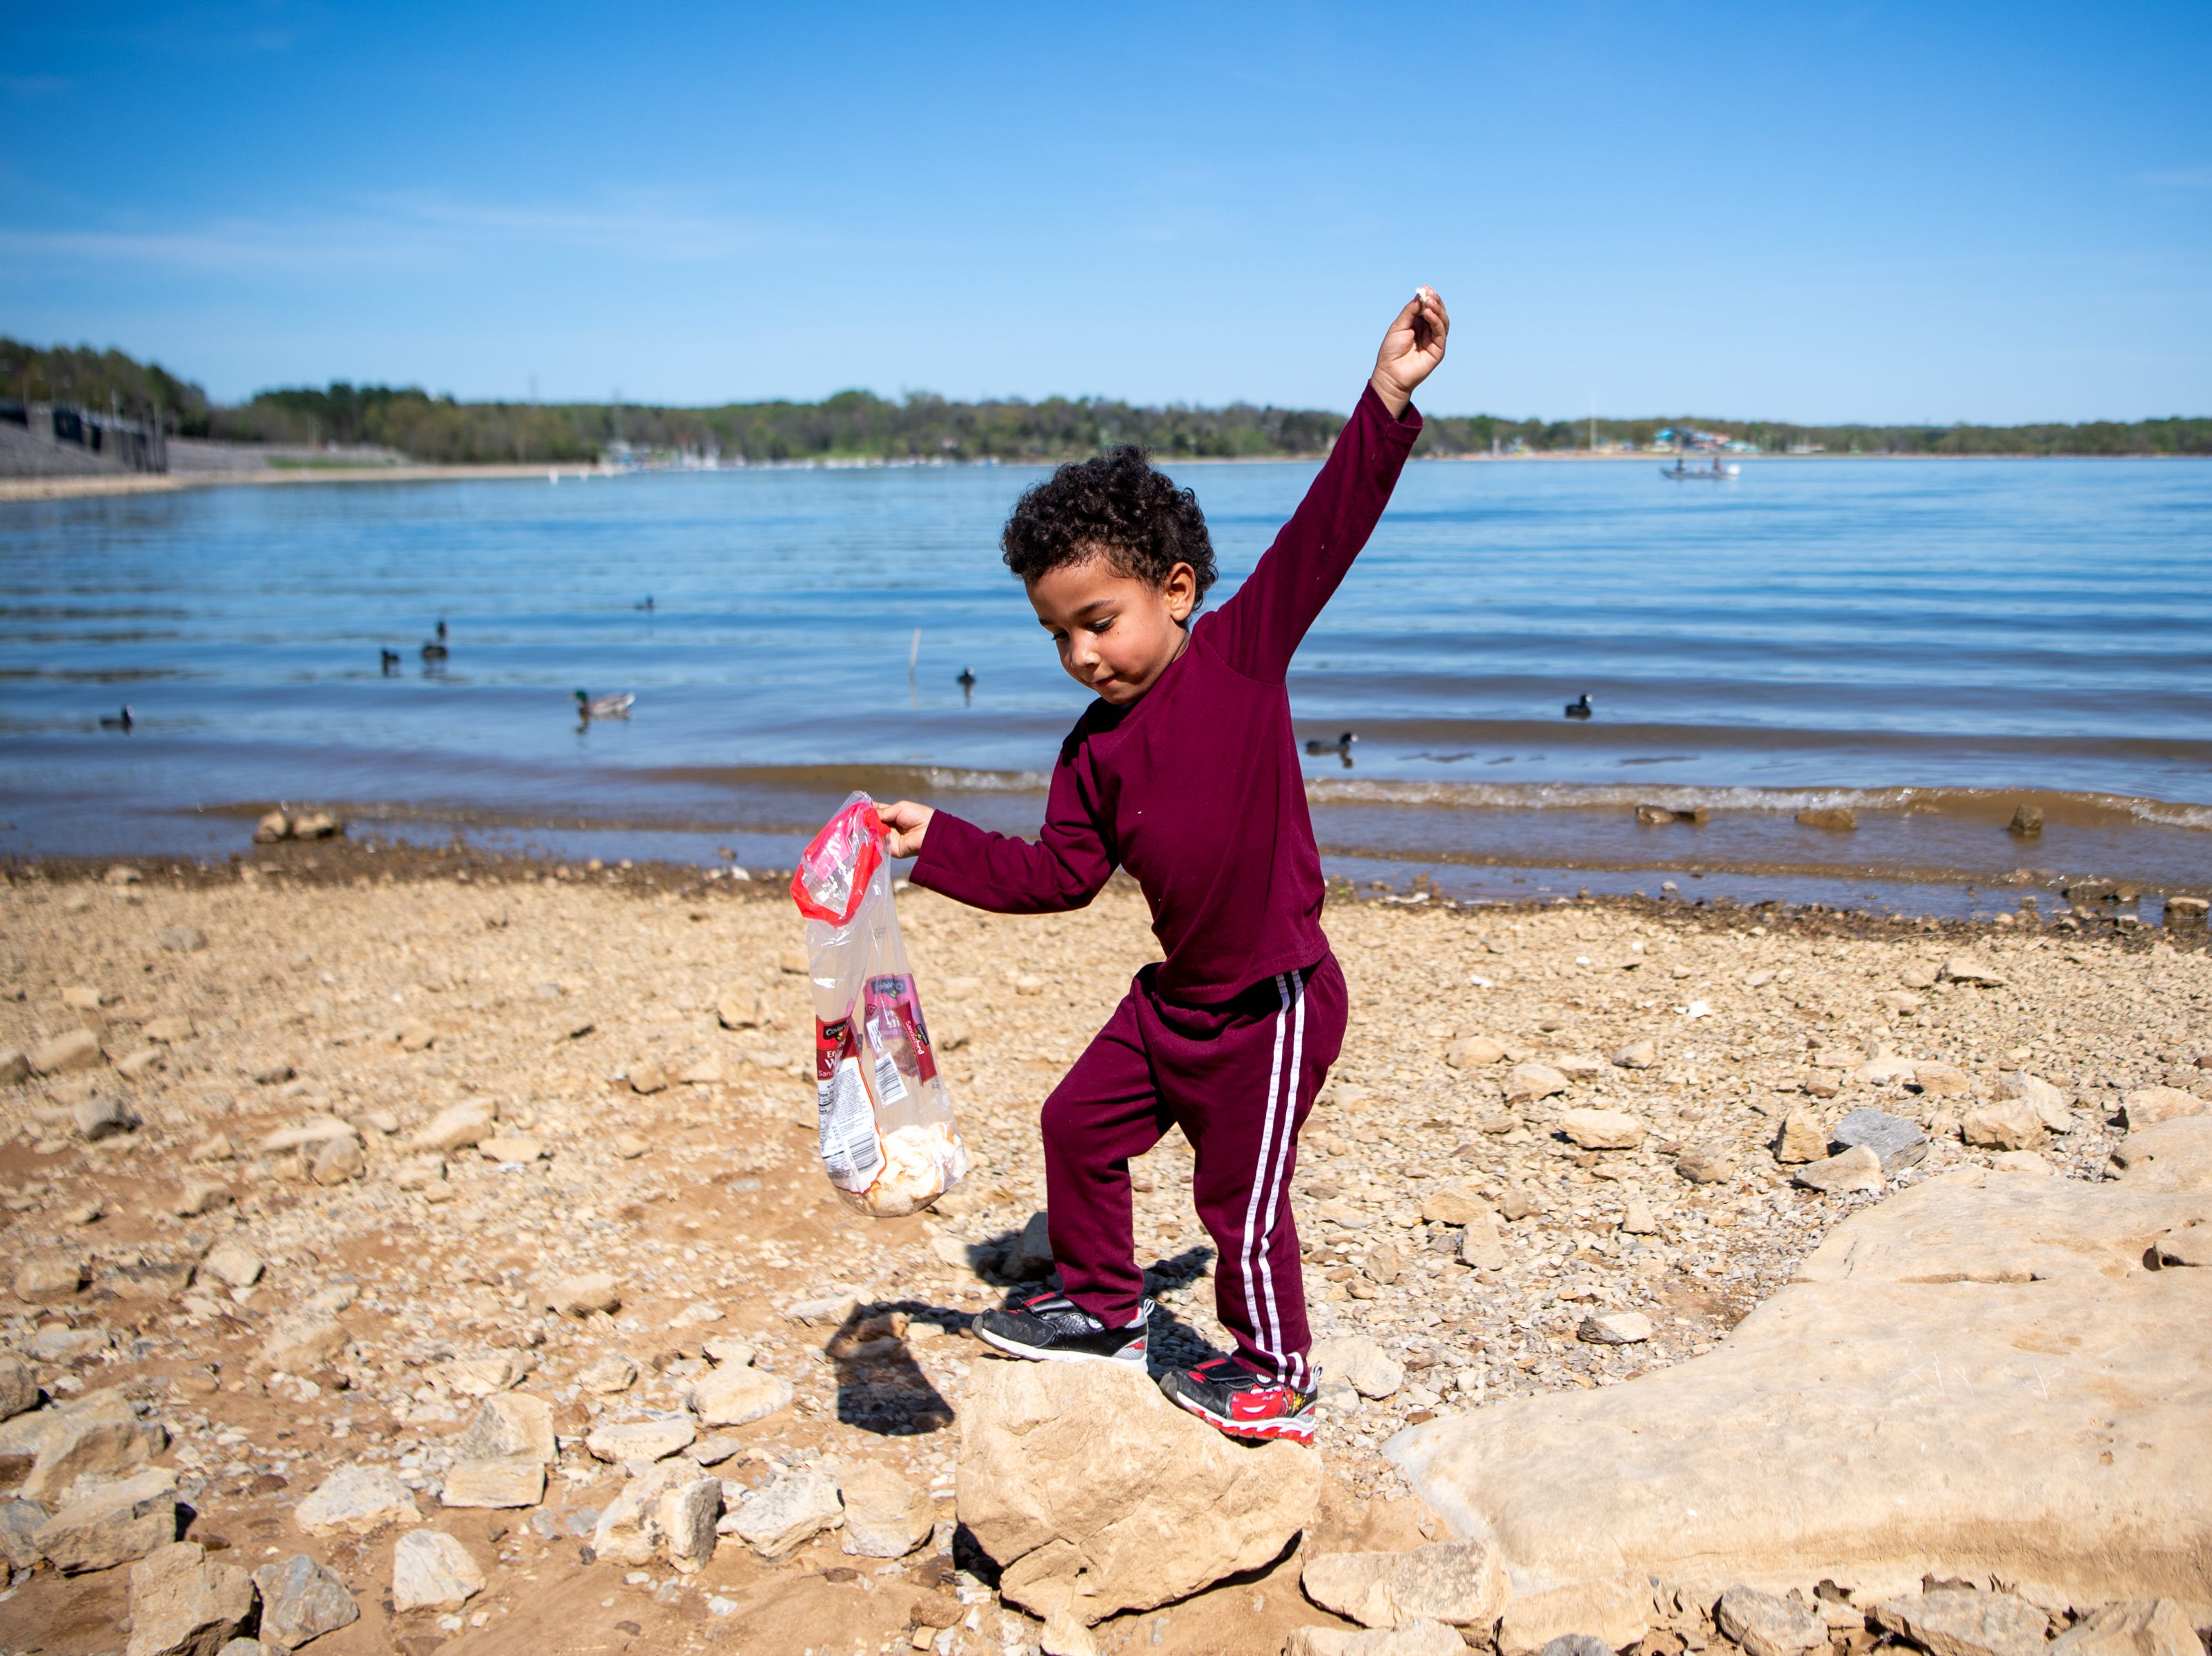 Roosevelt Covington, 5, tries to keep balance on rocks at Percy Priest Lake Wednesday, April 10, 2019, in Nashville, Tenn.